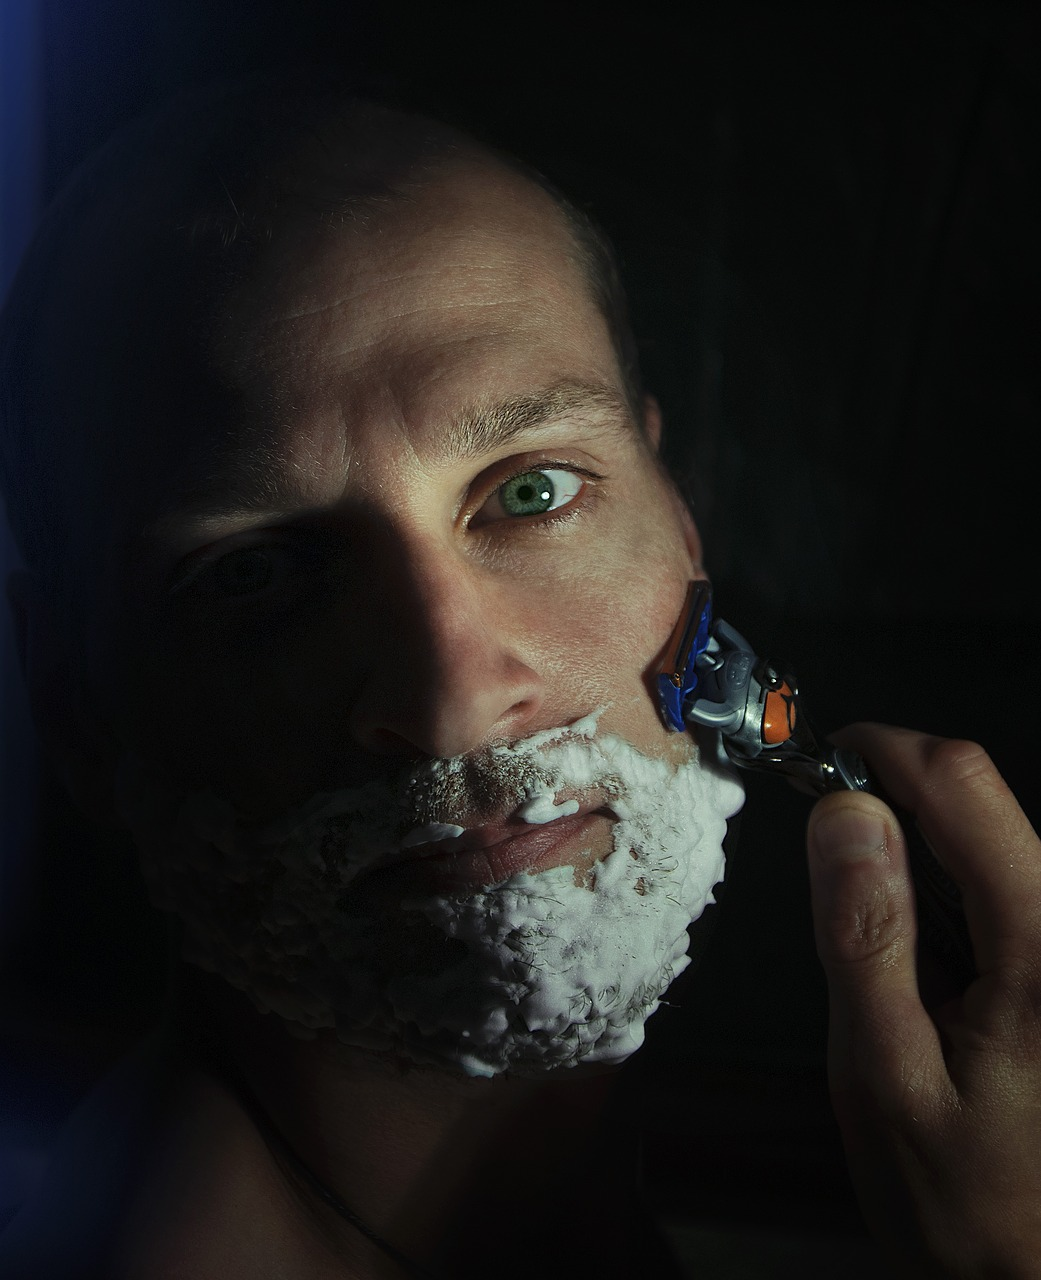 man with shaving cream and shaving his beard with a Gillette Safety Razor